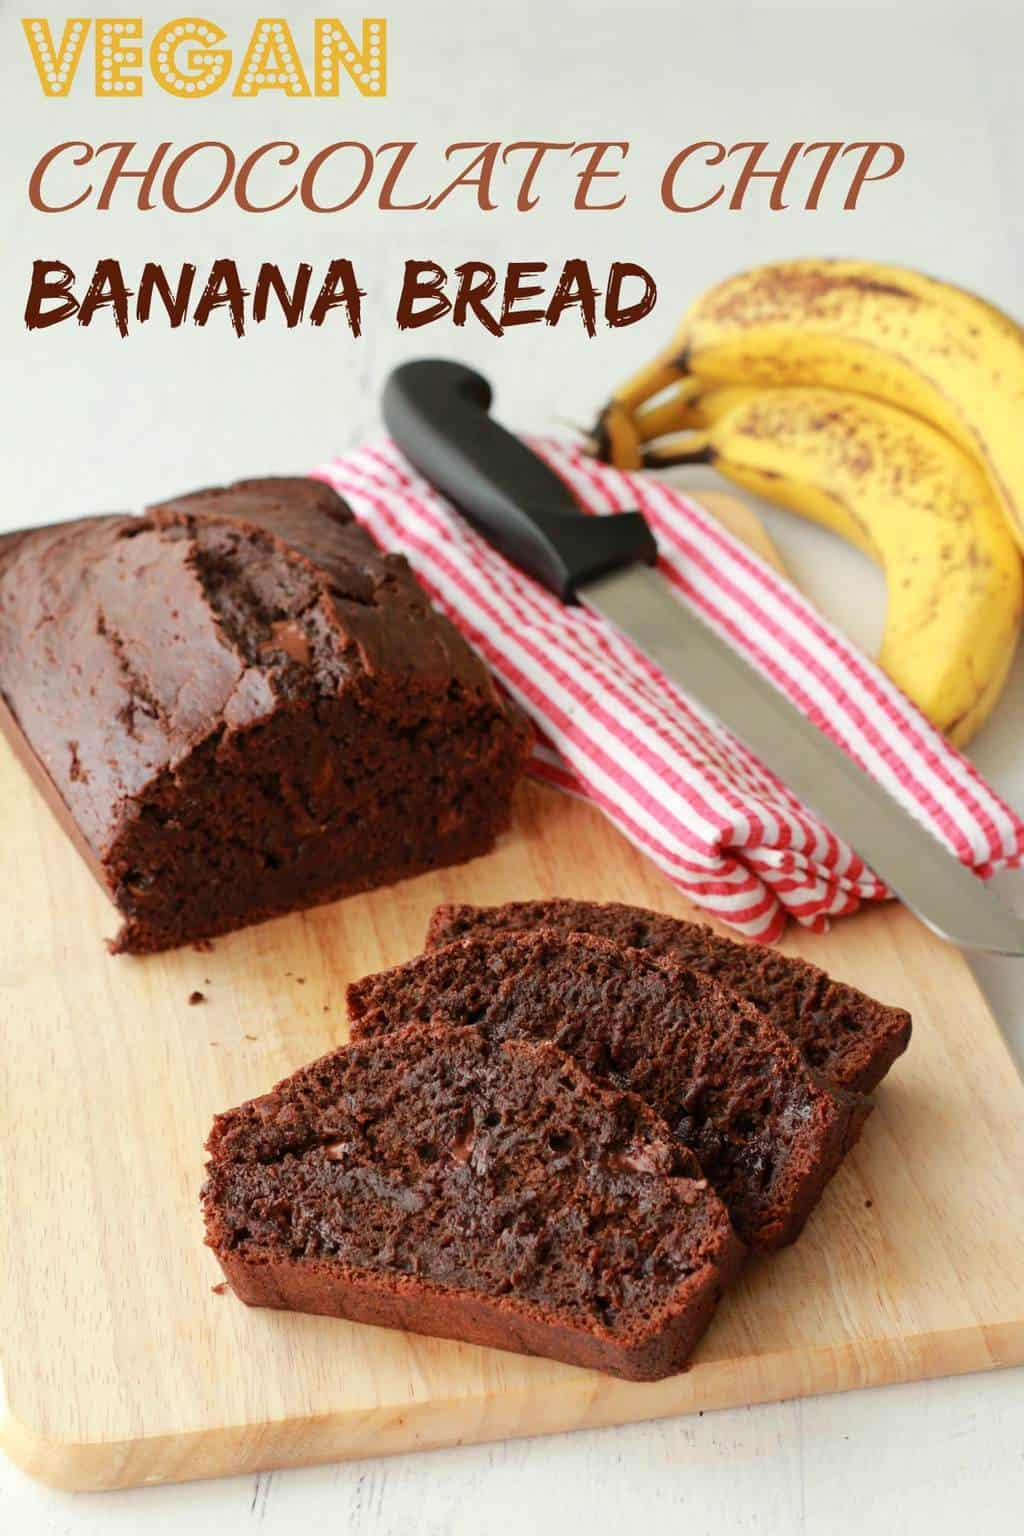 Vegan Chocolate Chip Banana Bread #vegan #lovingitvegan #bananabread #dessert #chocolatechip